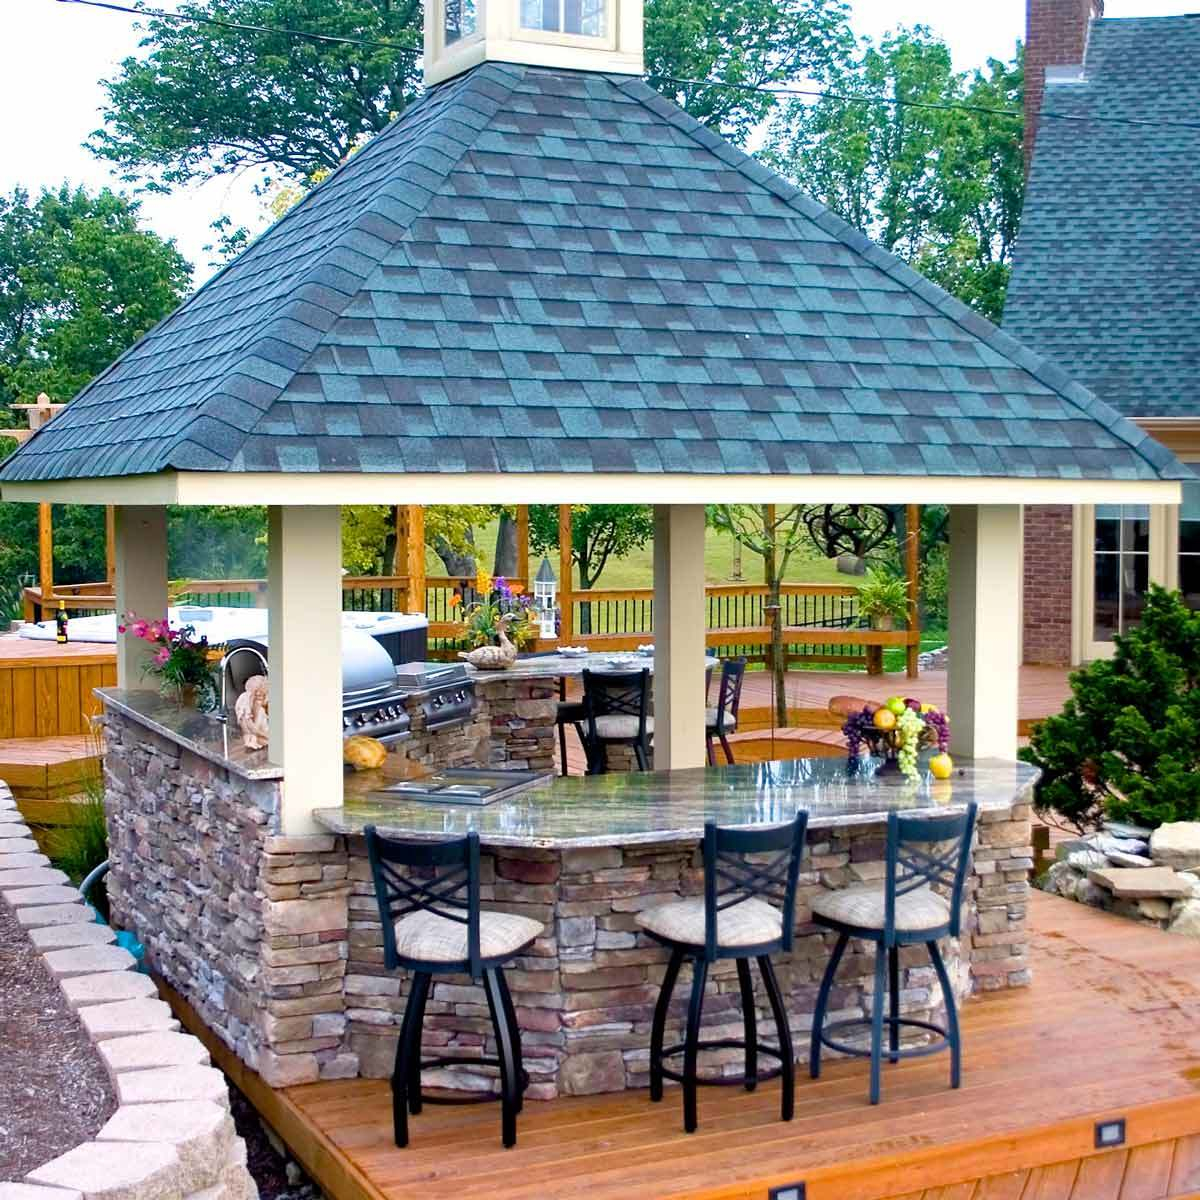 10 Inspiring Outdoor Bar Ideas The Family Handyman pertaining to Backyard Tiki Bar Ideas